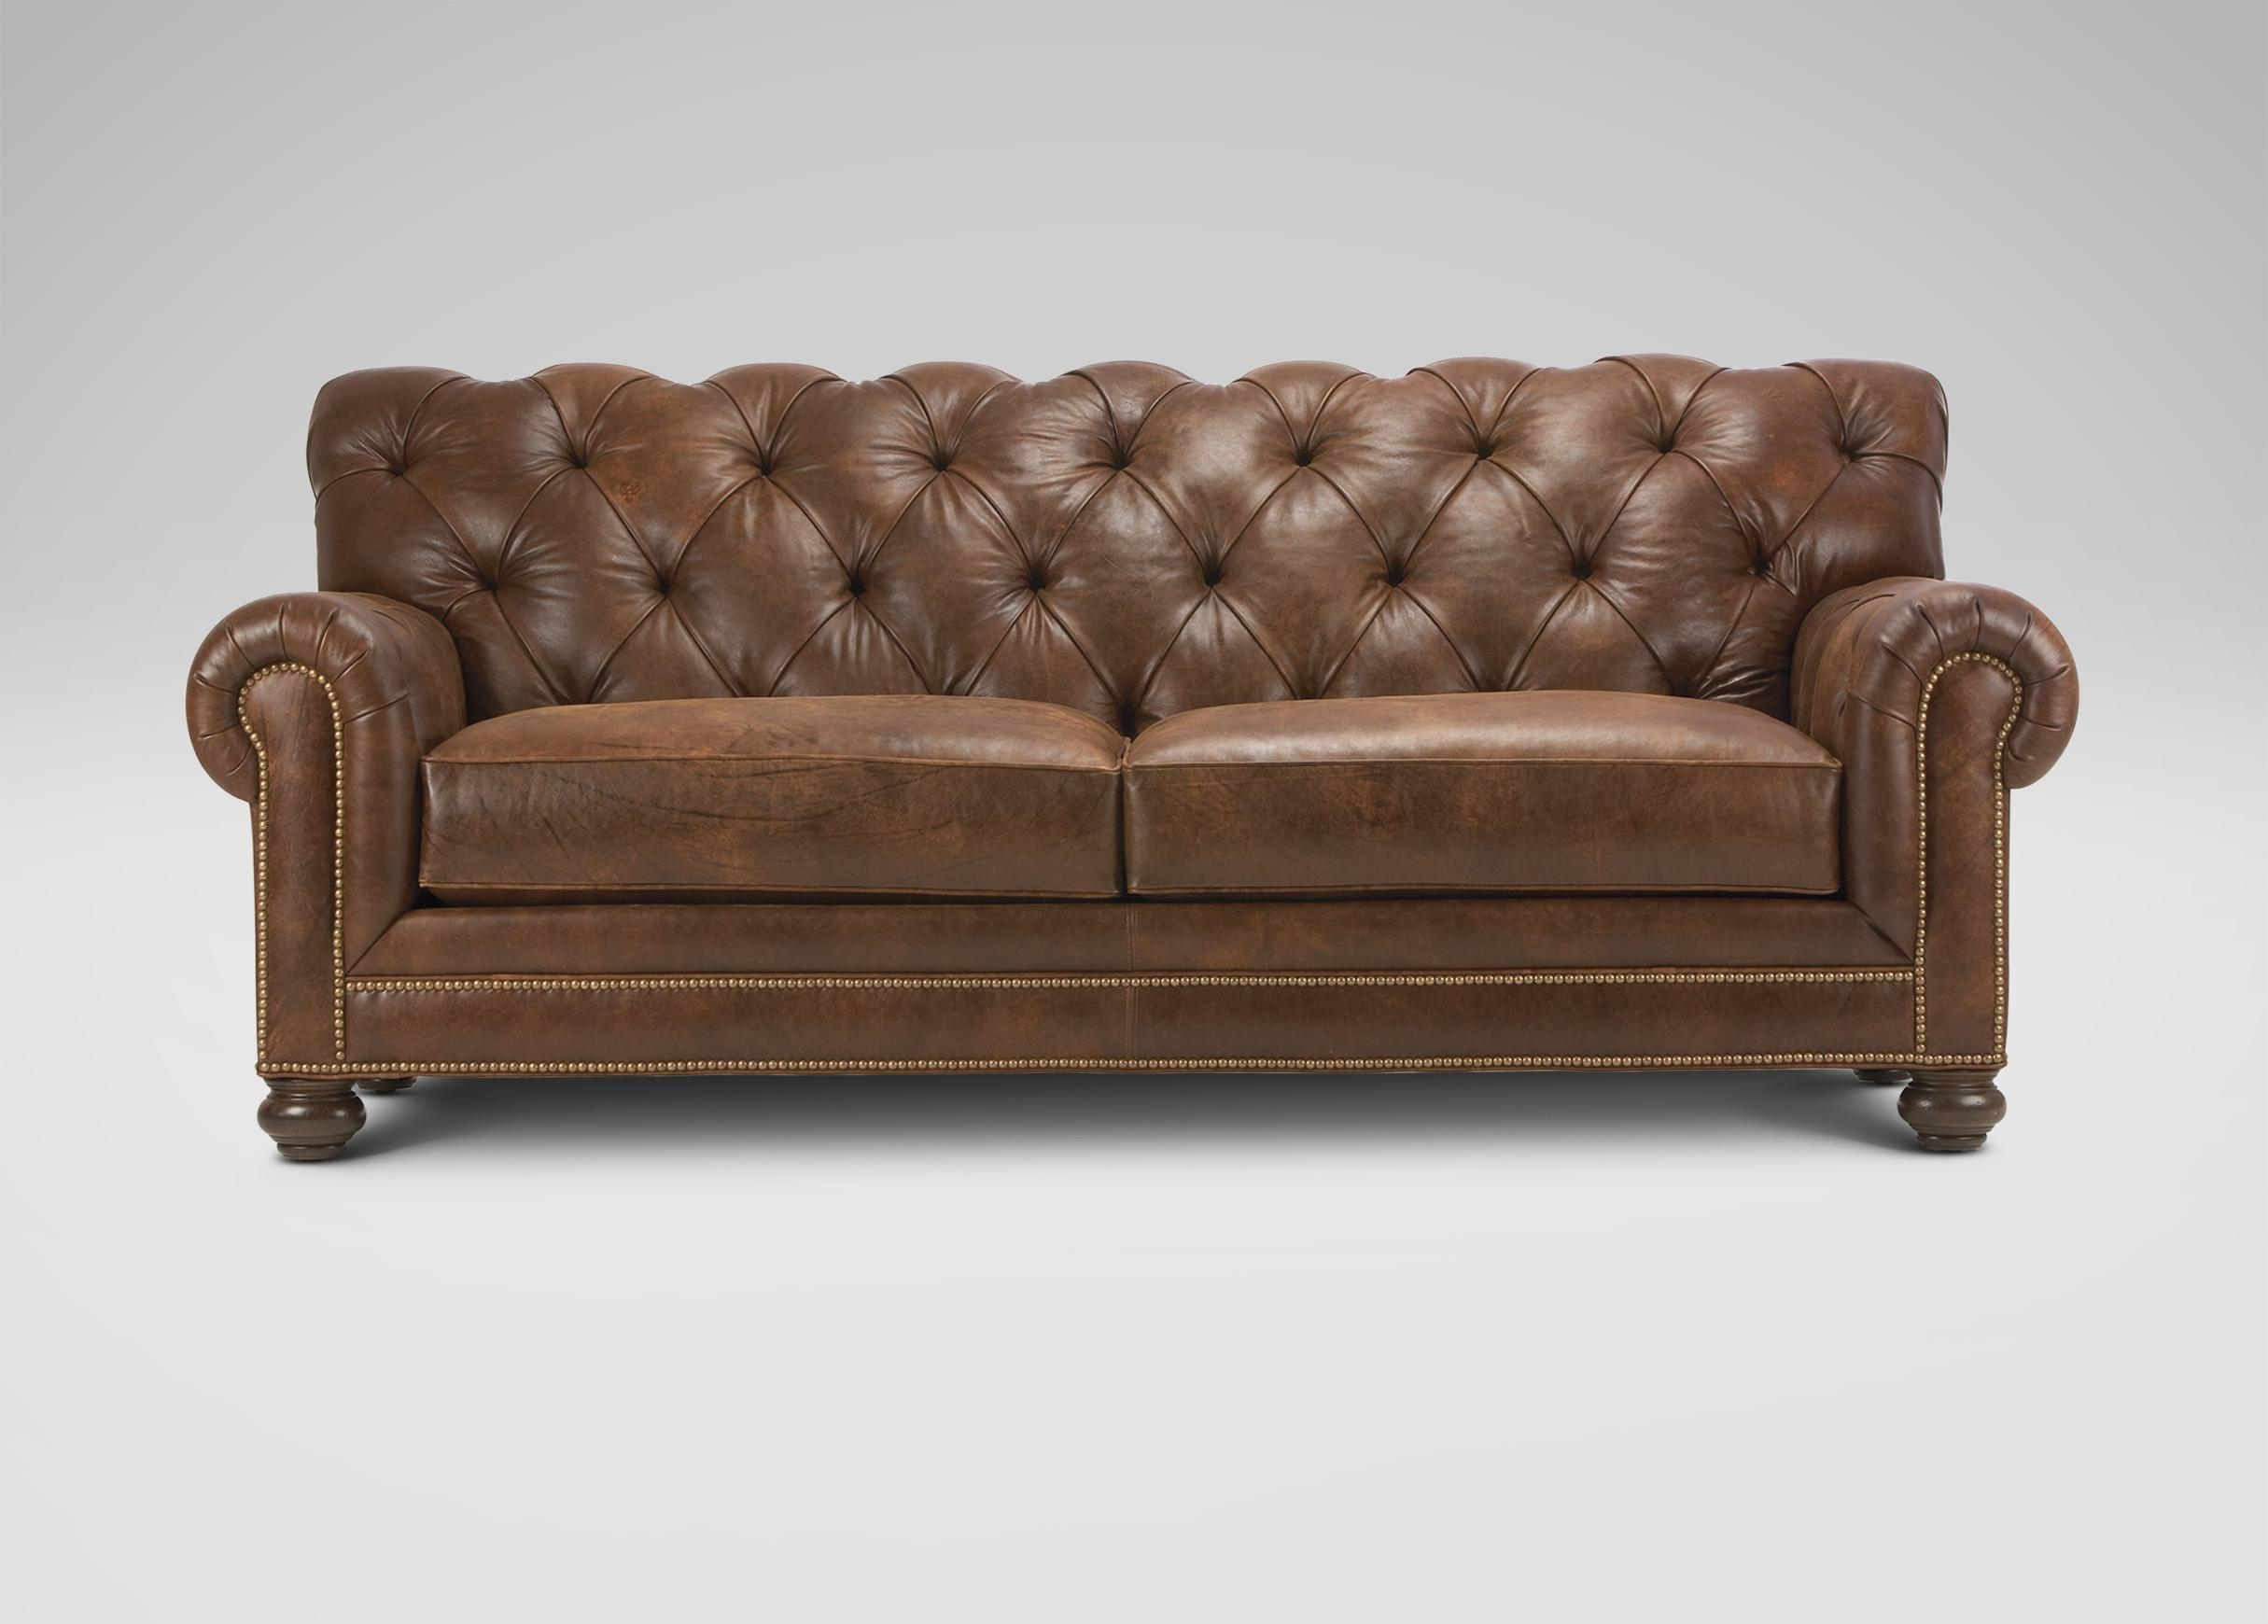 Sofas: Comfortable Interior Sofas Design With Ethan Allen Leather For Camelback Leather Sofas (View 12 of 20)